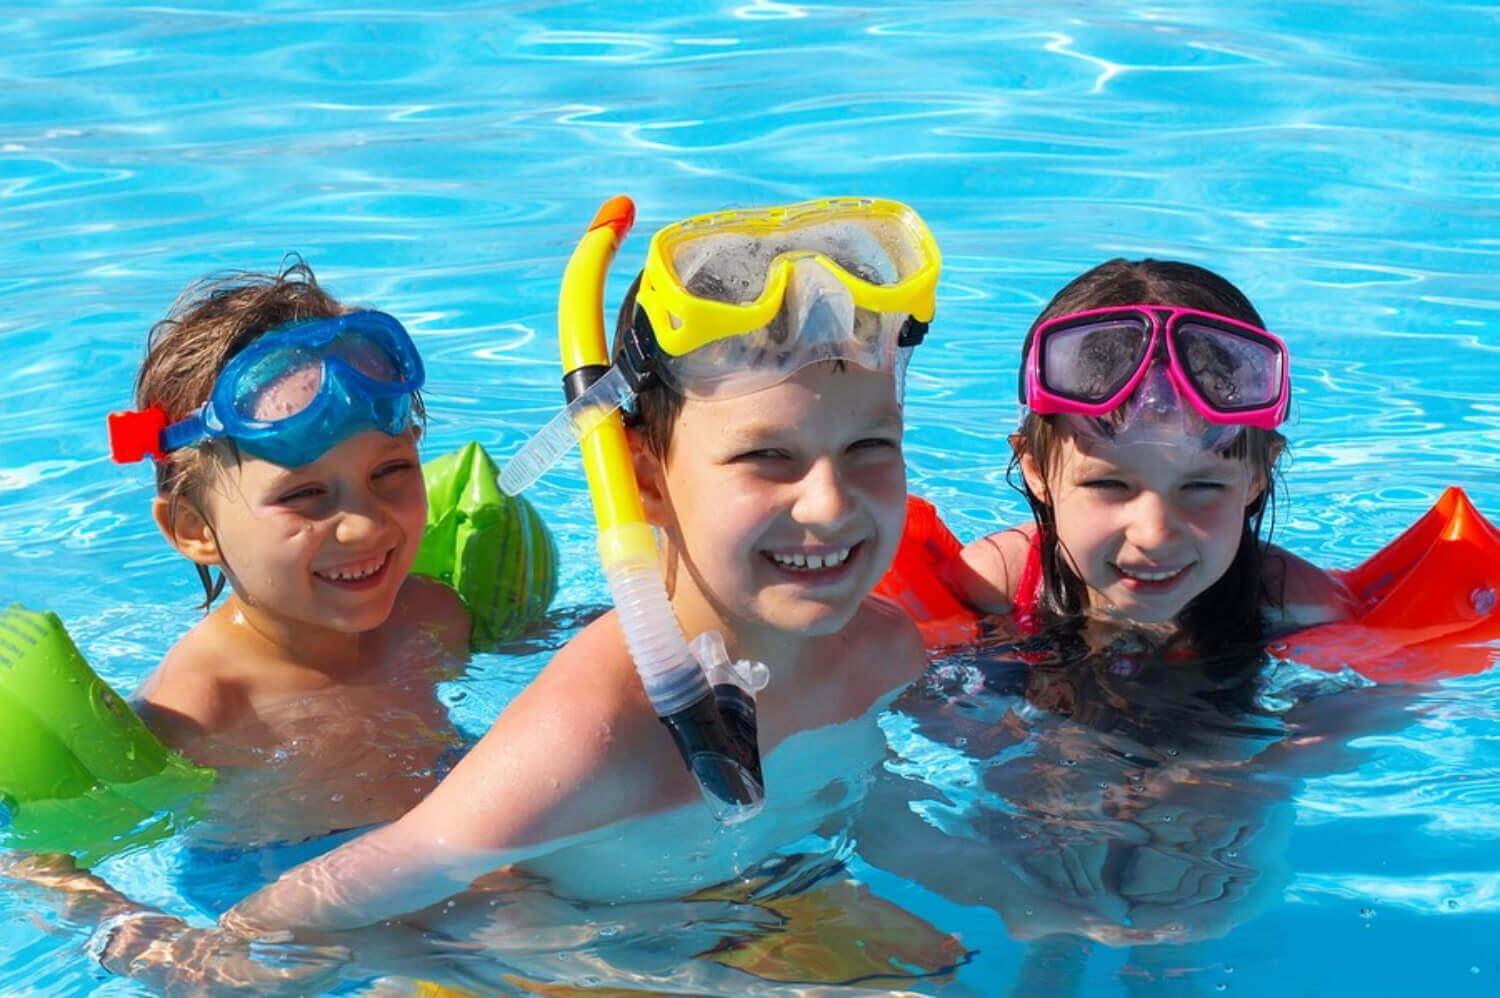 Children playing in a pool with snorkel gear.